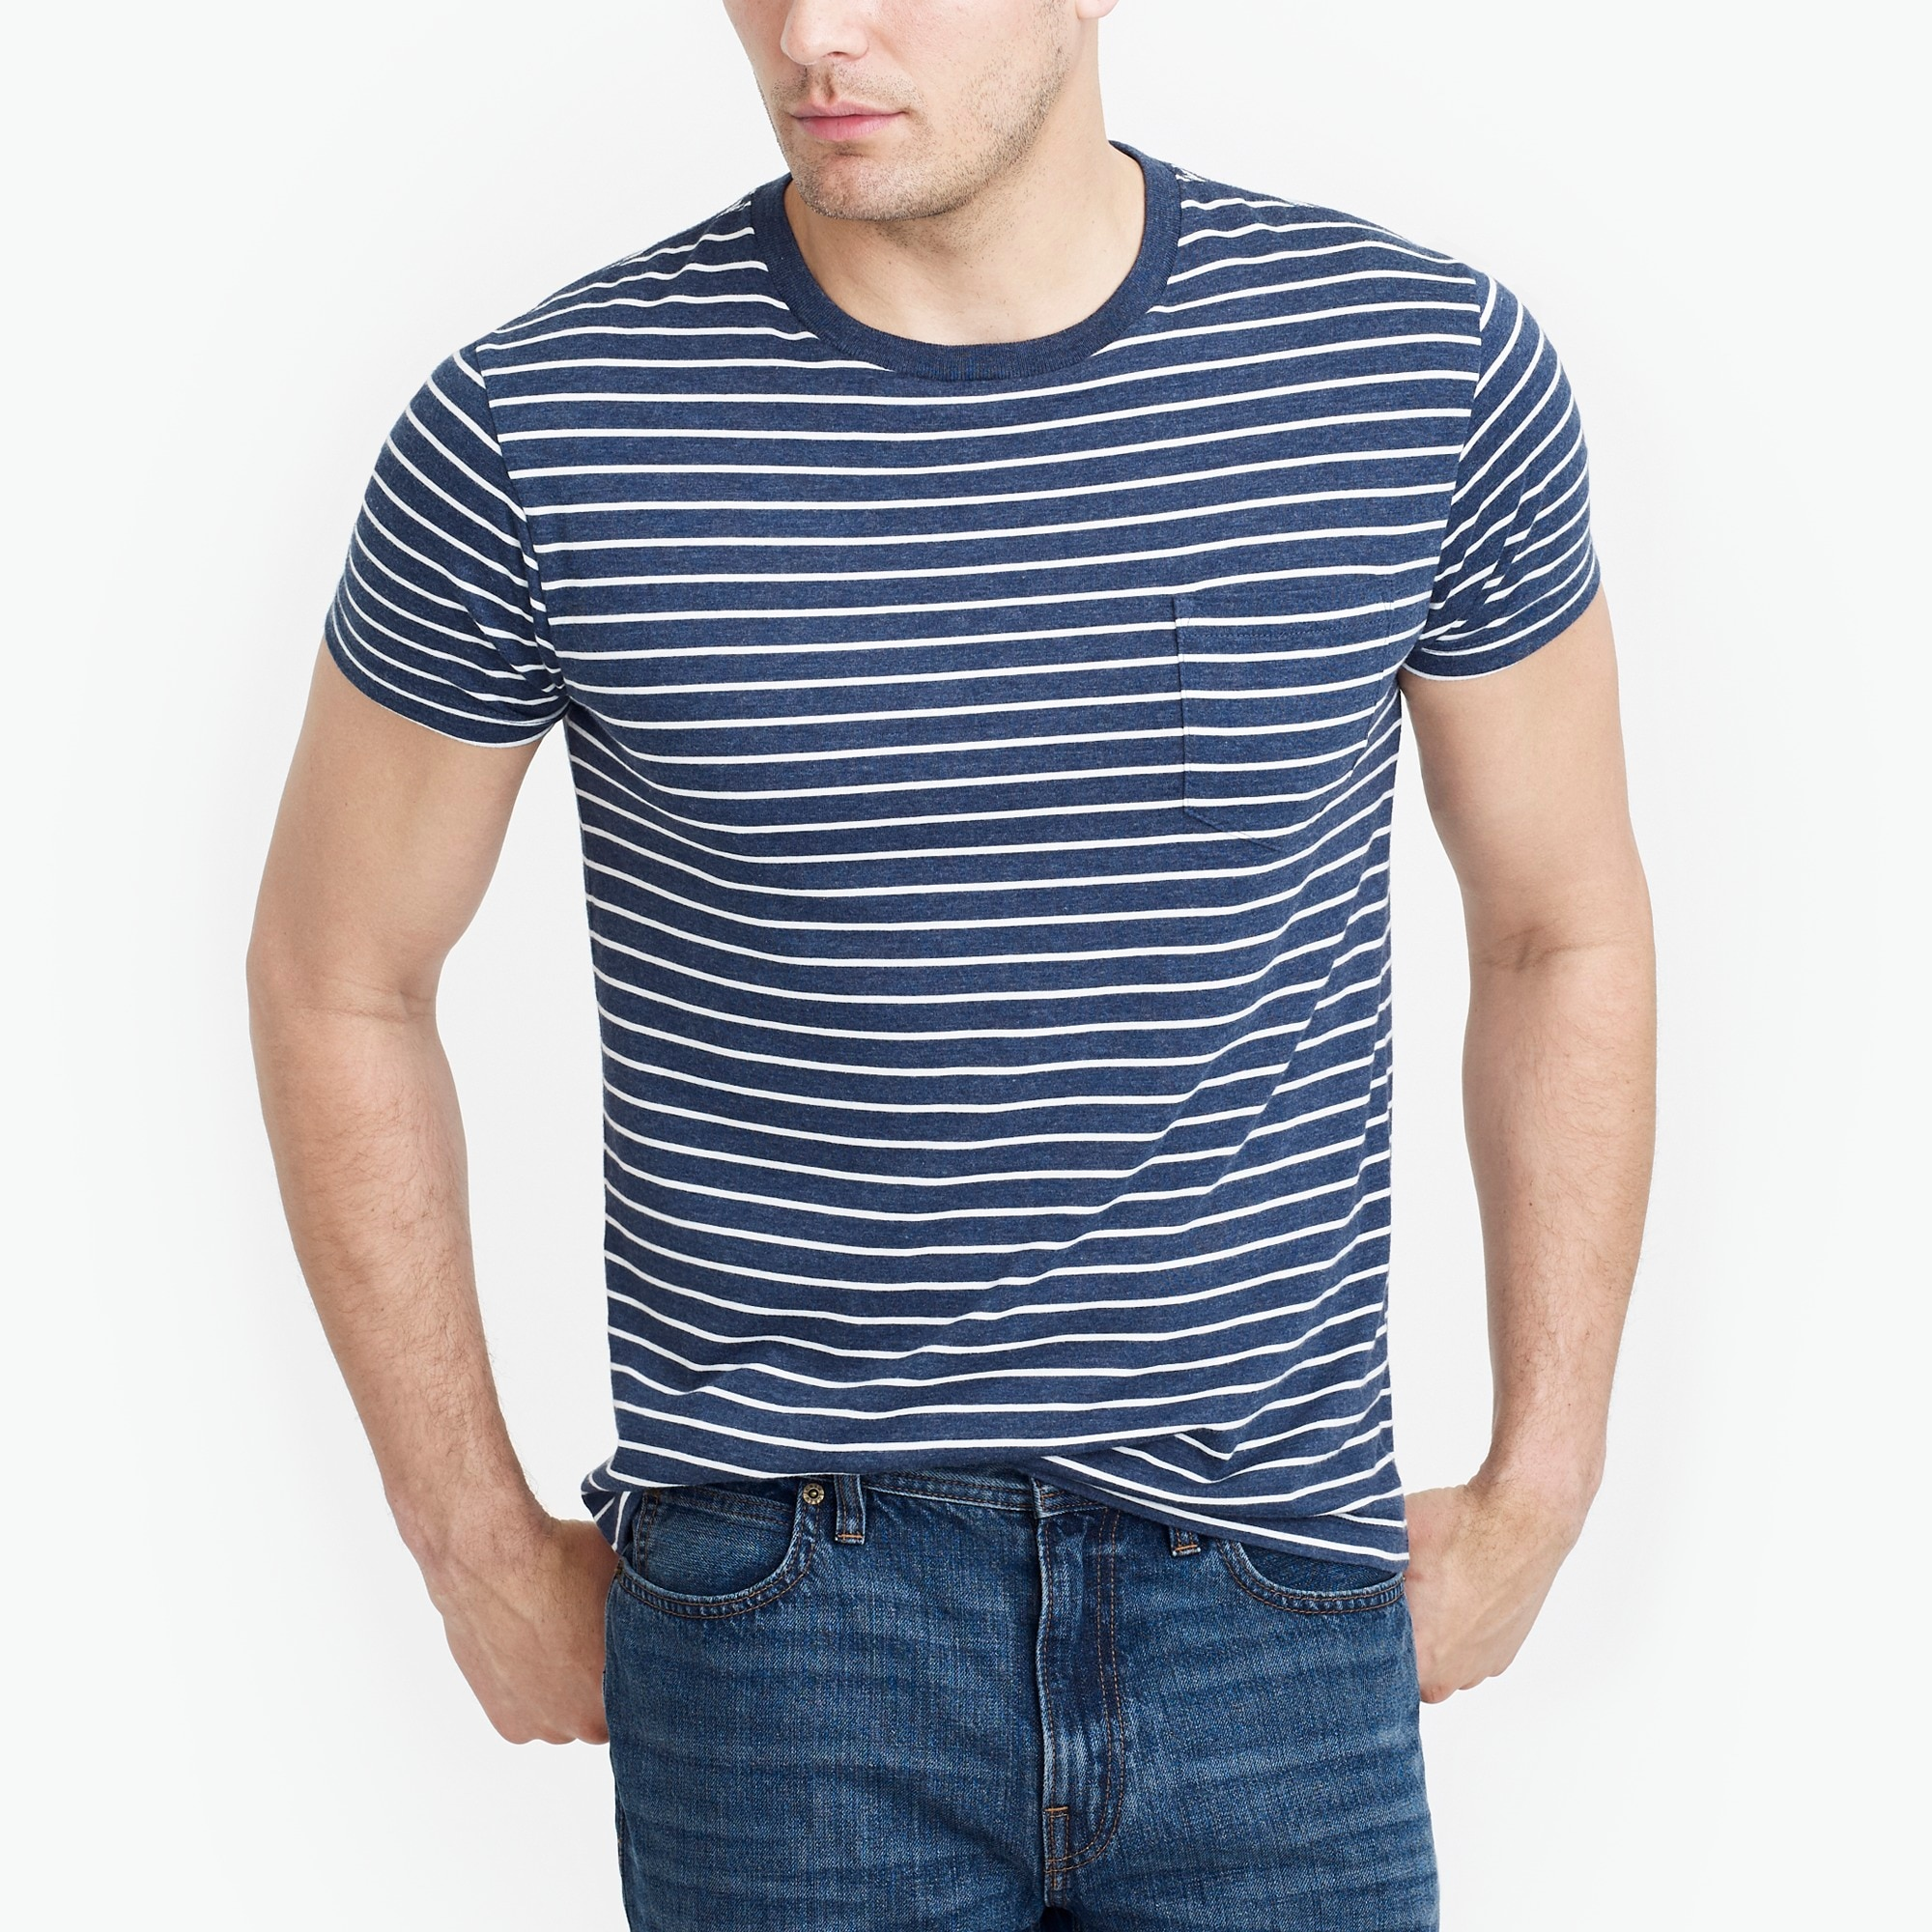 Image 1 for Tall slim Broken-in striped pocket T-shirt